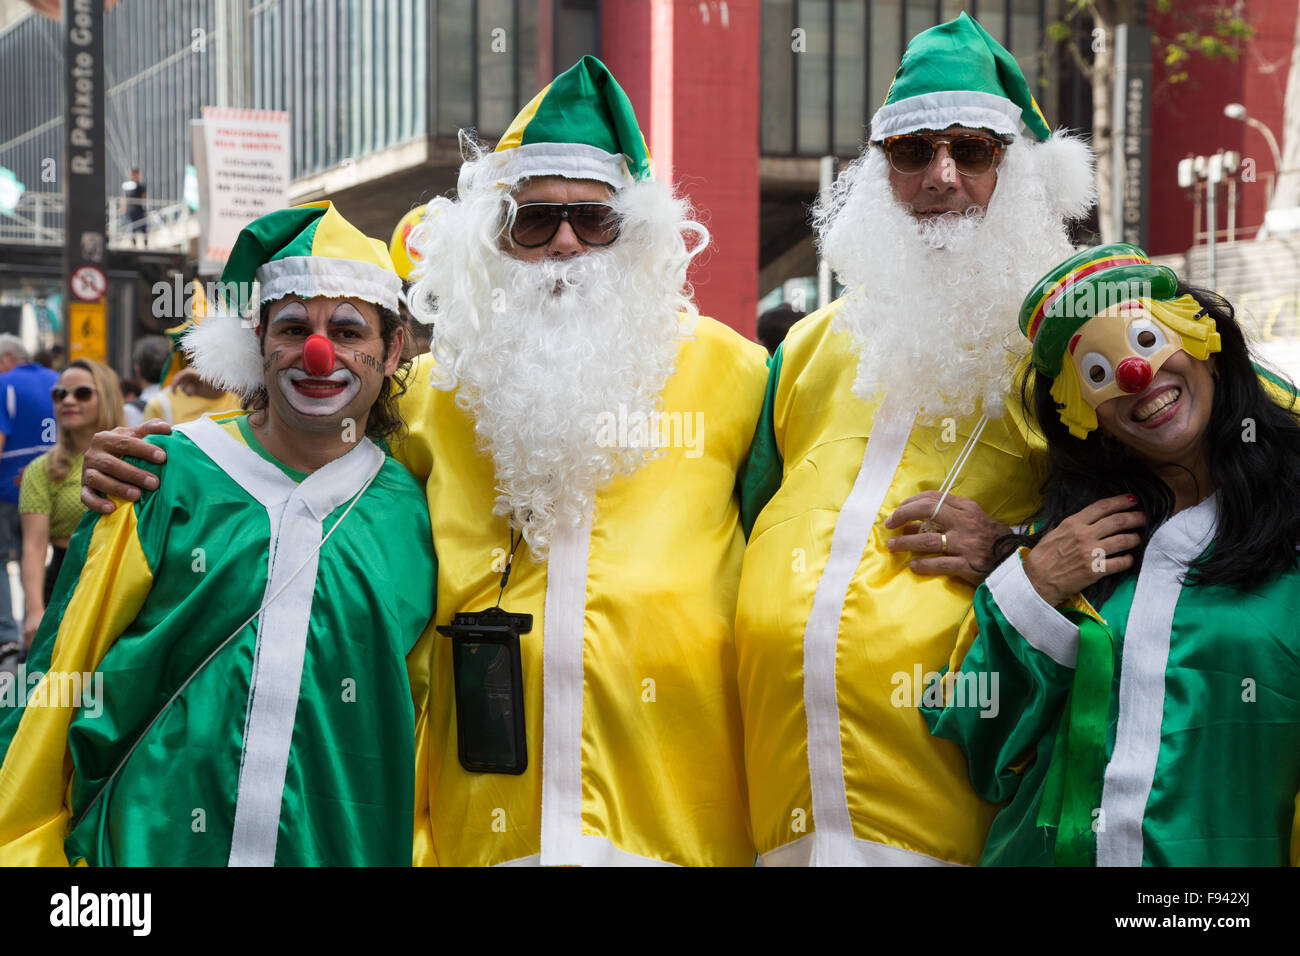 Sao Paulo, Brazil. 13th December, 2015. Demonstrators costumed clowns and Santa Claus with Brazil flag colors are - Stock Image